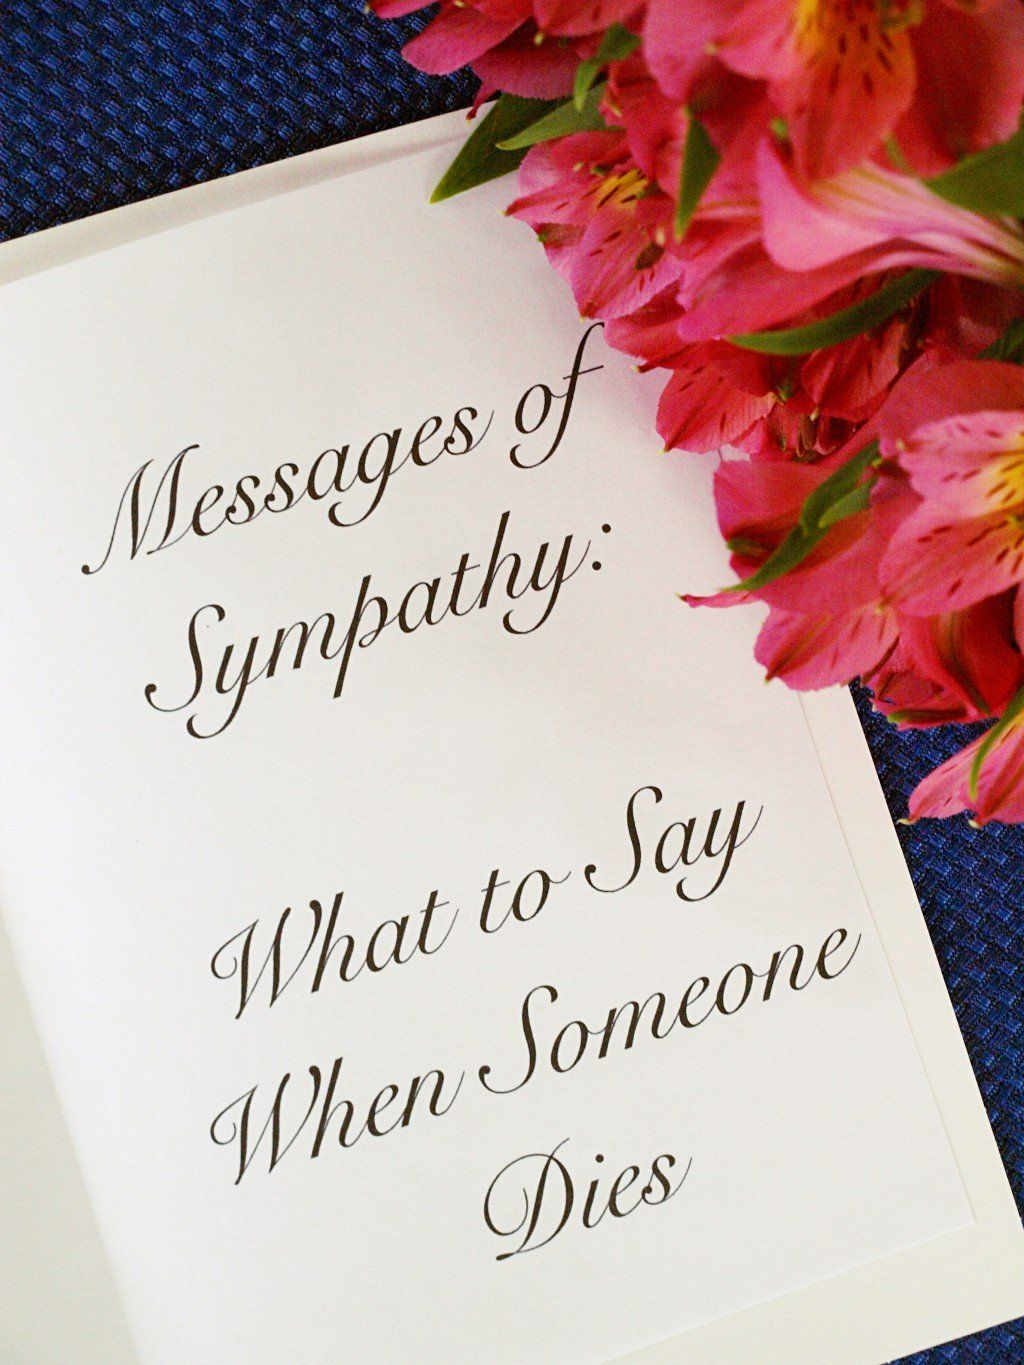 50 messages of sympathy what to say when someone dies